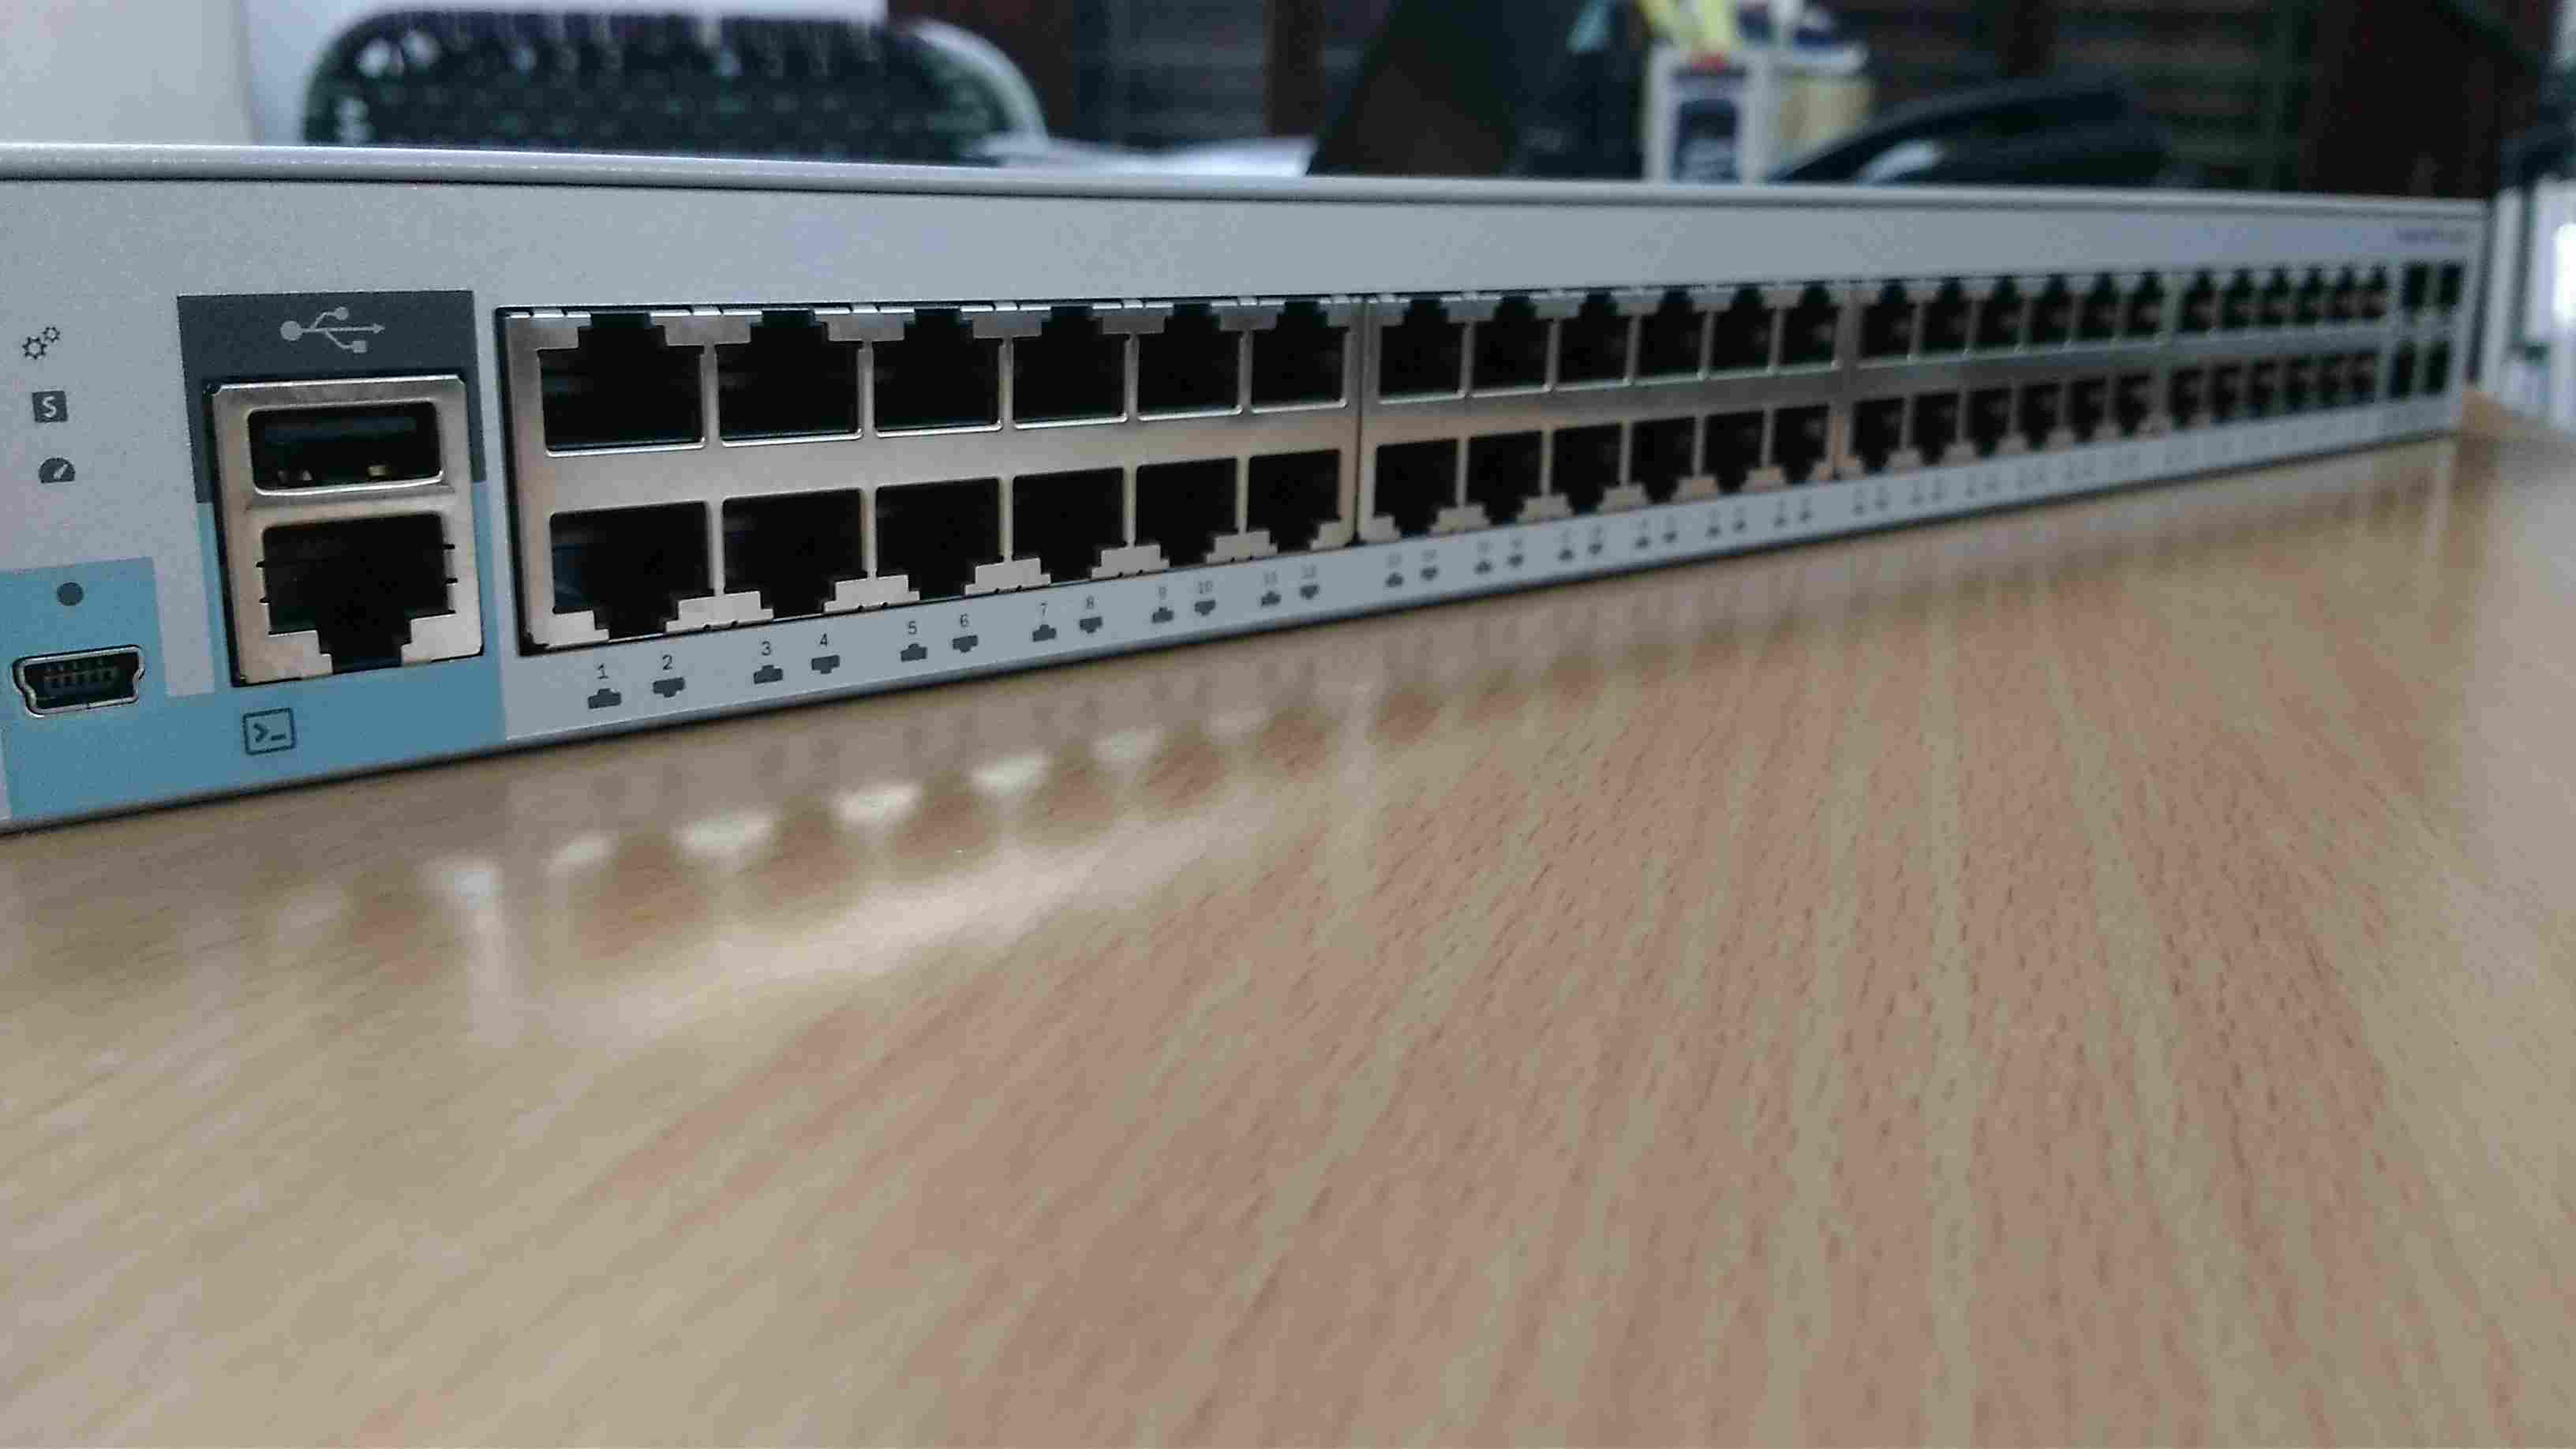 Switch Cisco Catalyst 2960L 48 Port GigE 4X10G SFP+ LAN Lite